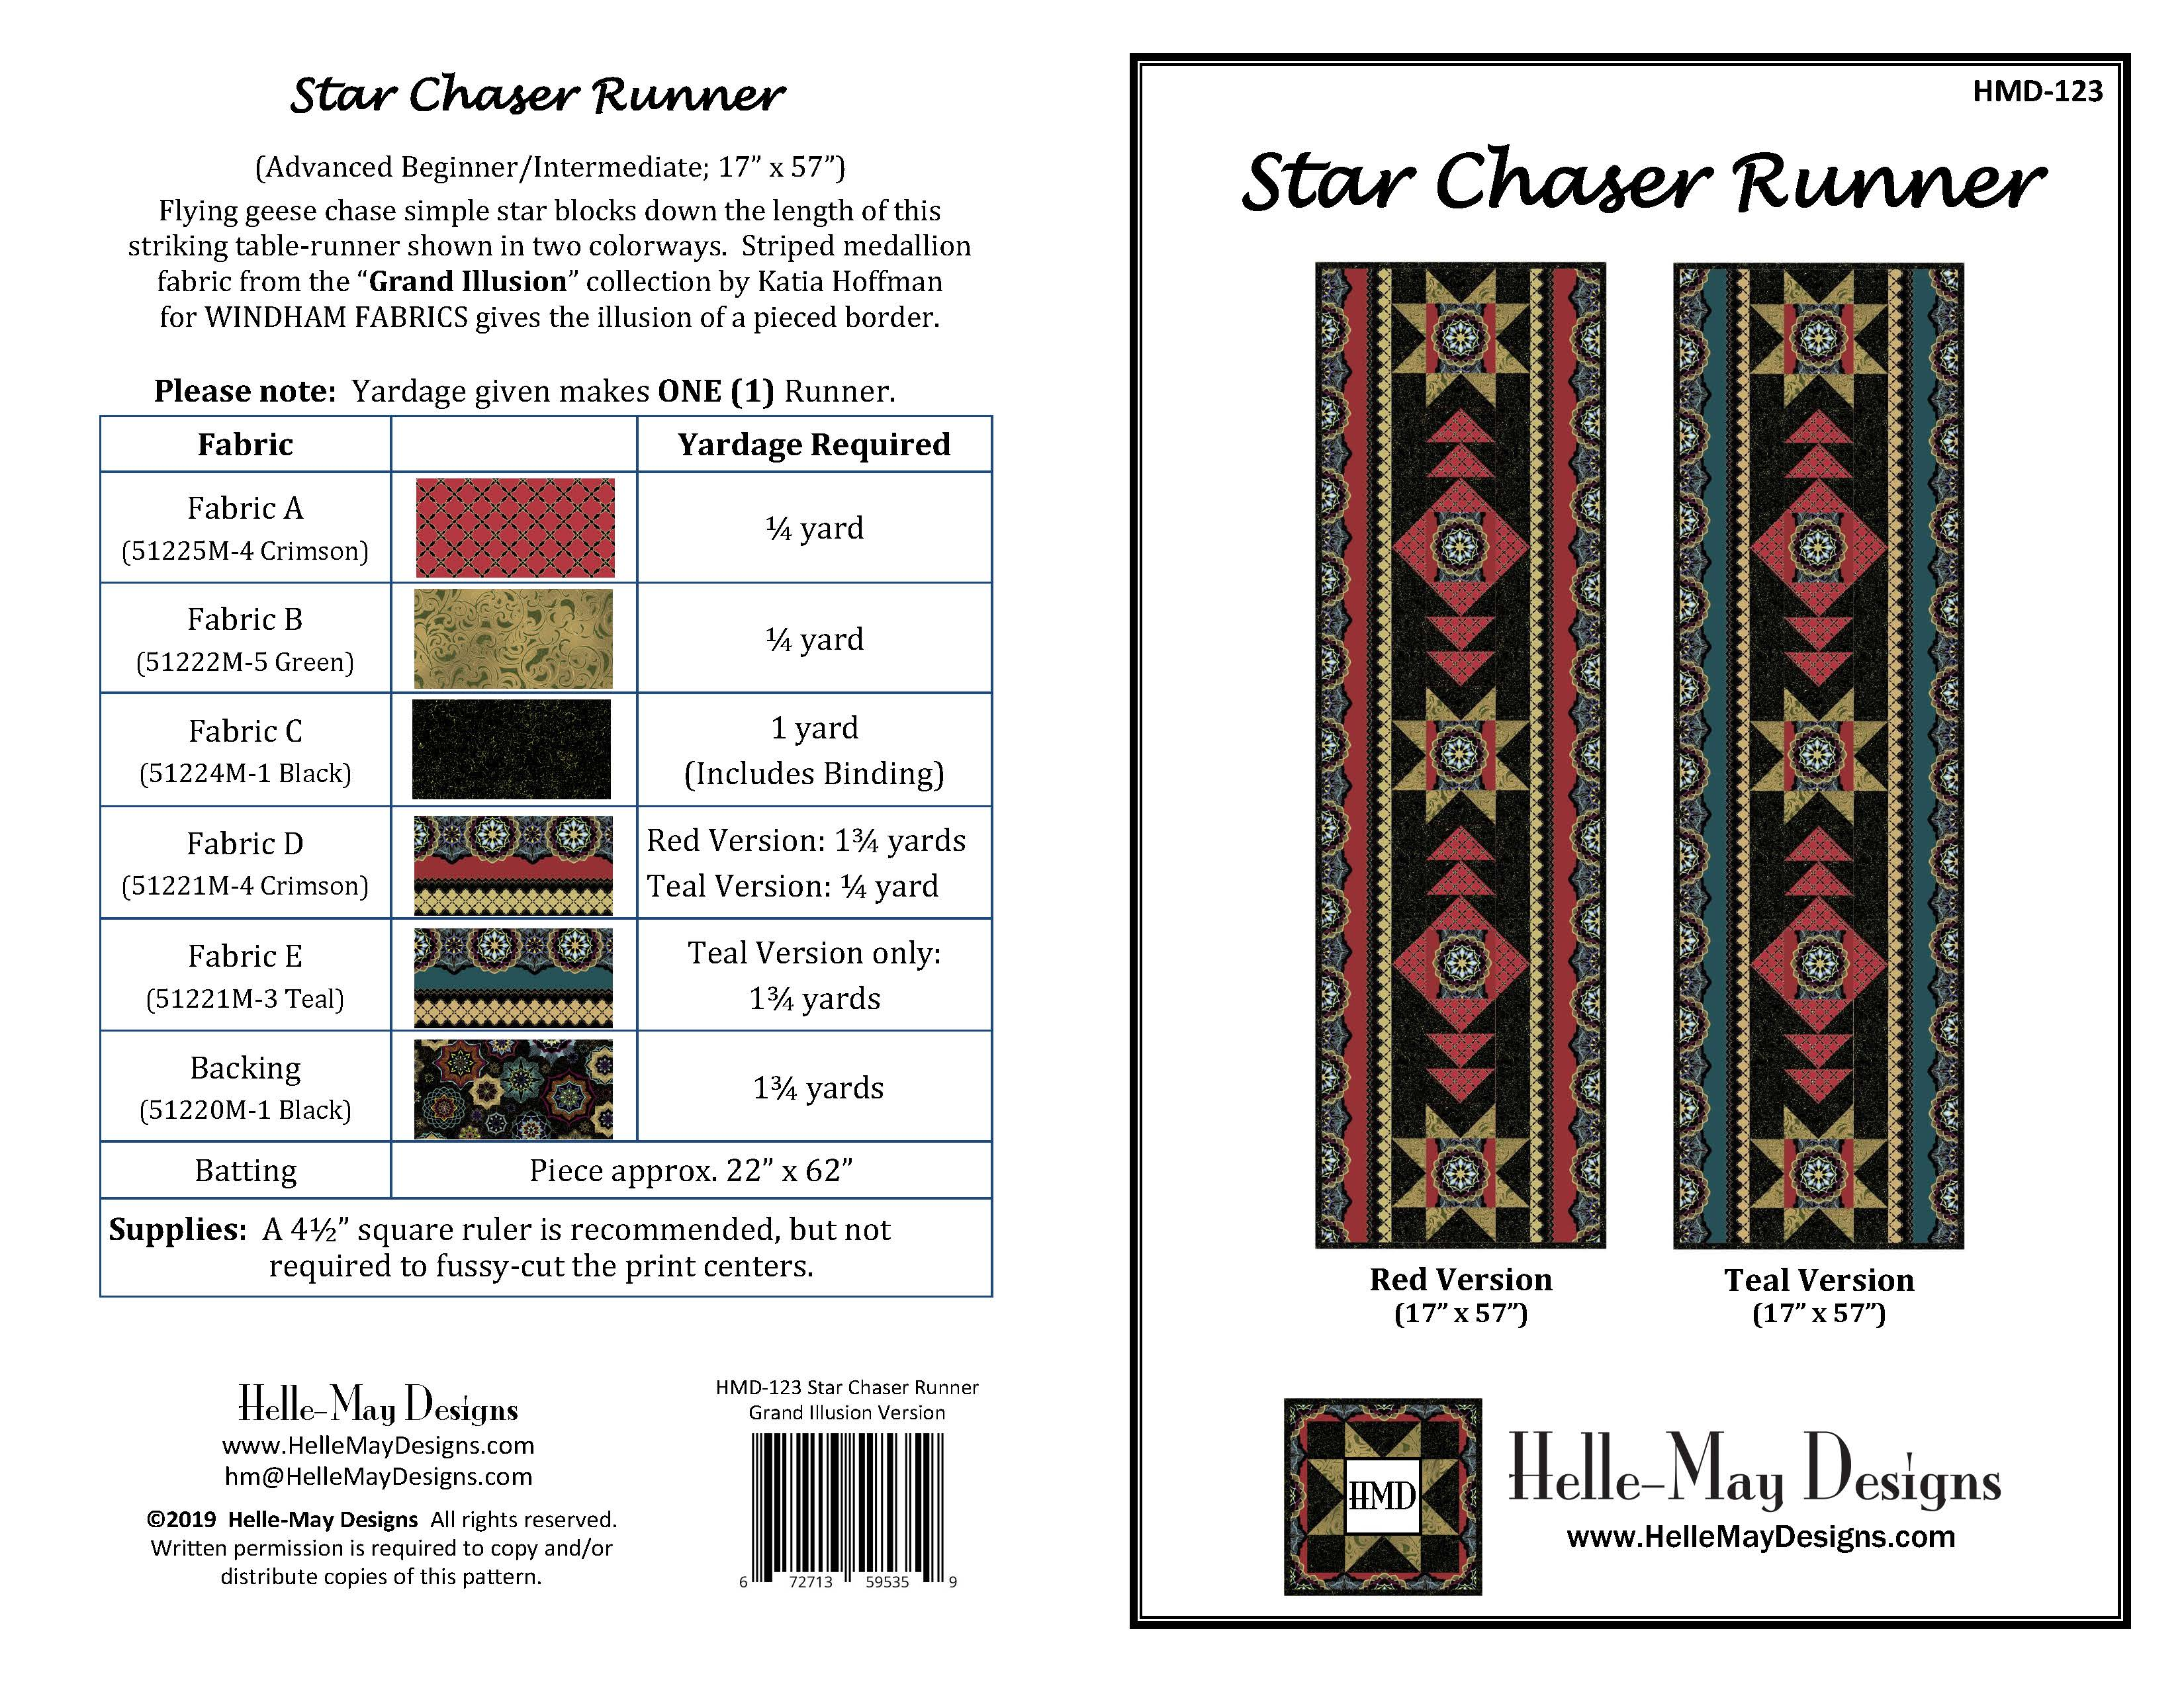 HMD-123 Star Chaser Runner